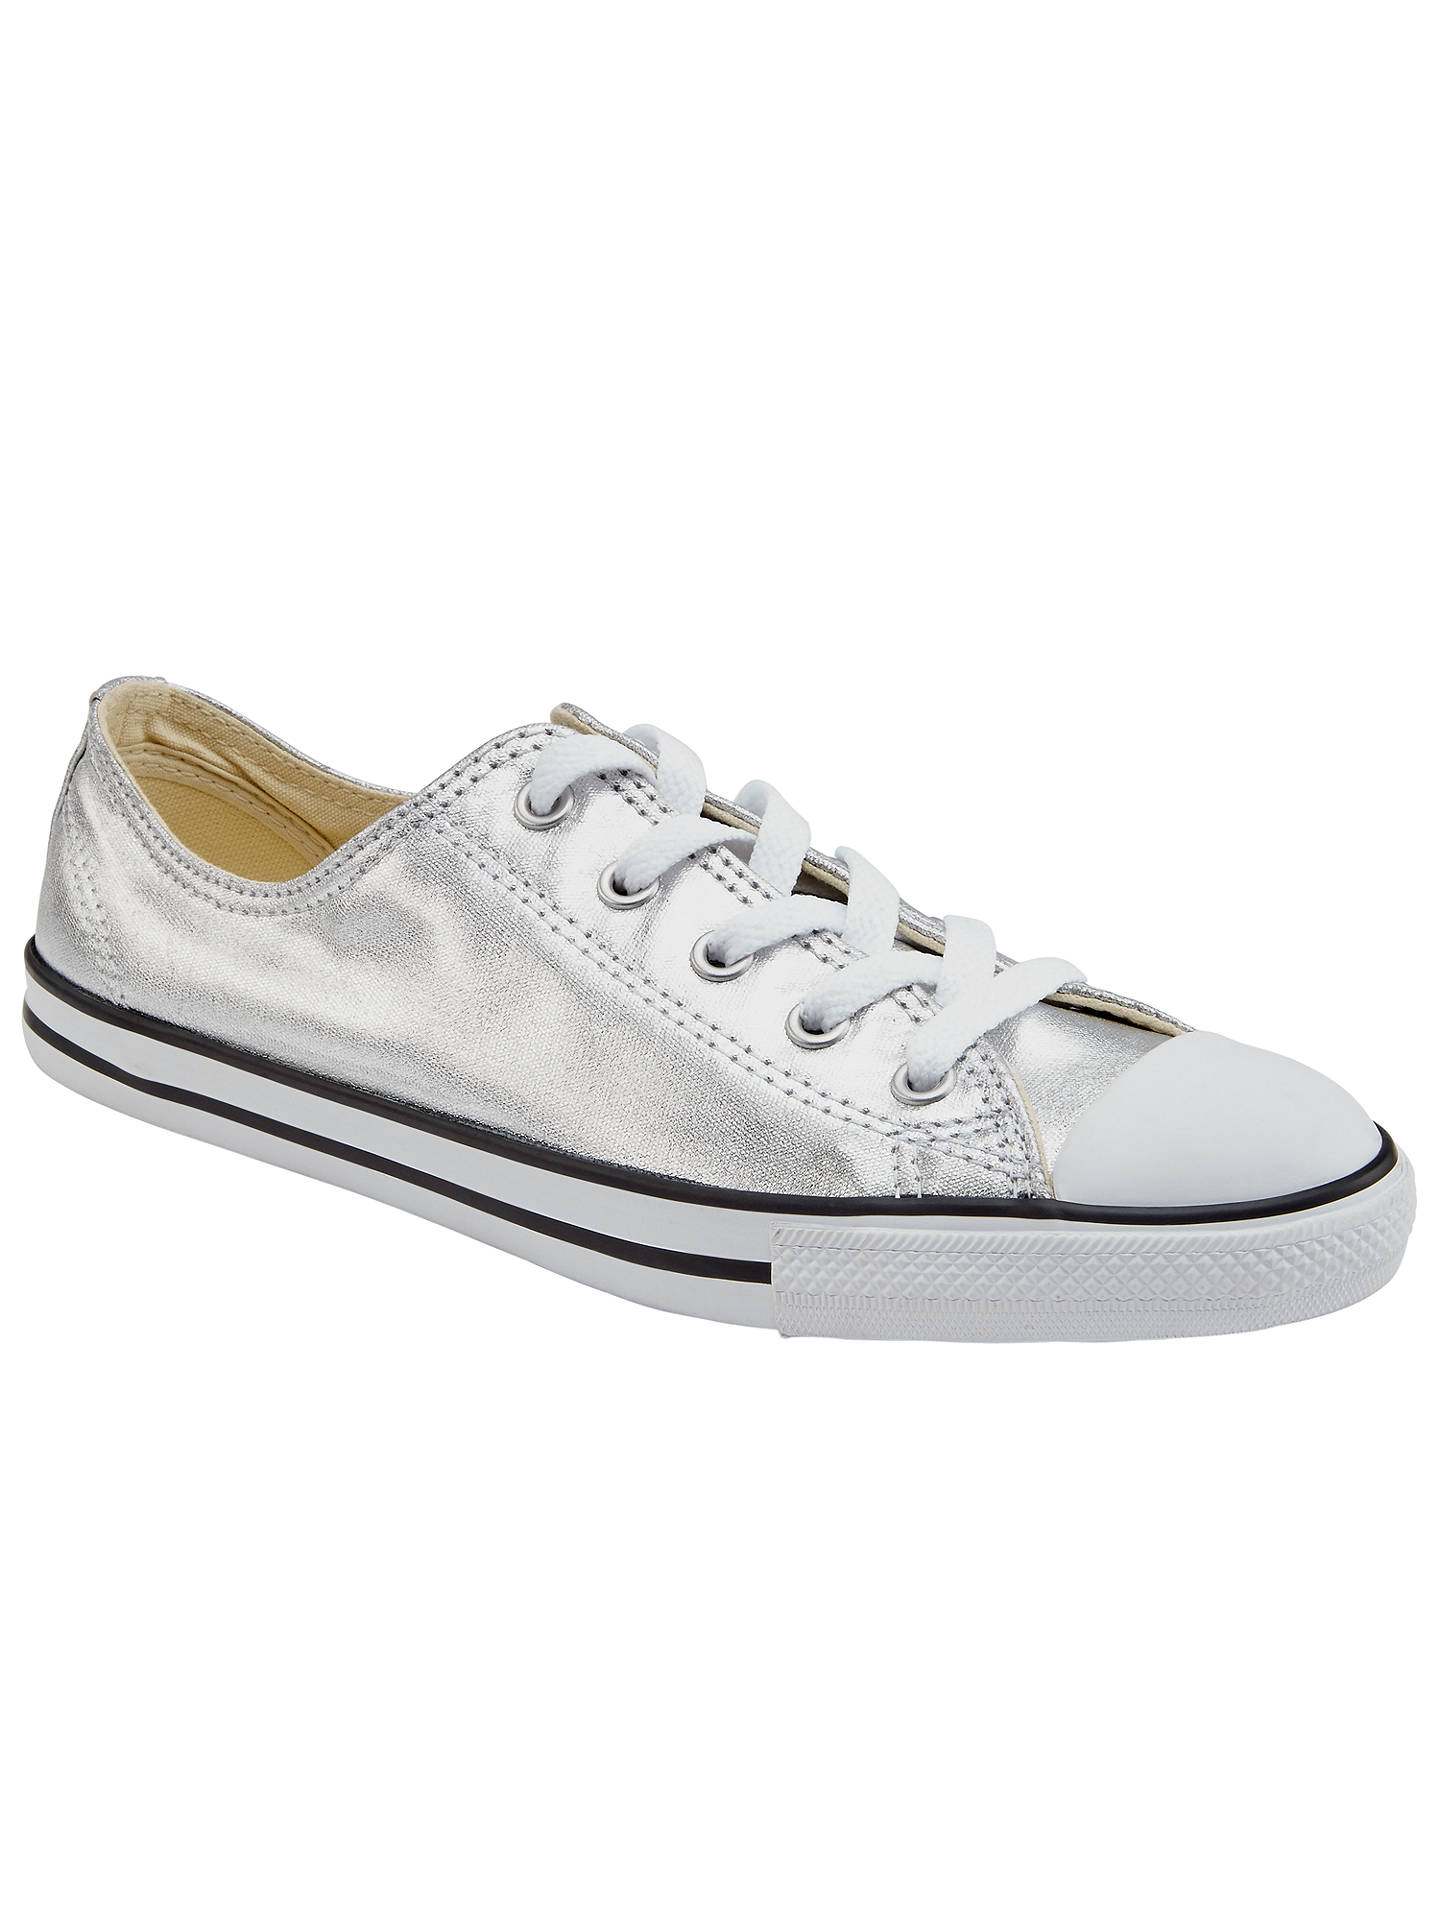 BuyConverse Chuck Taylor All Star Dainty Trainers bd00a13ab5